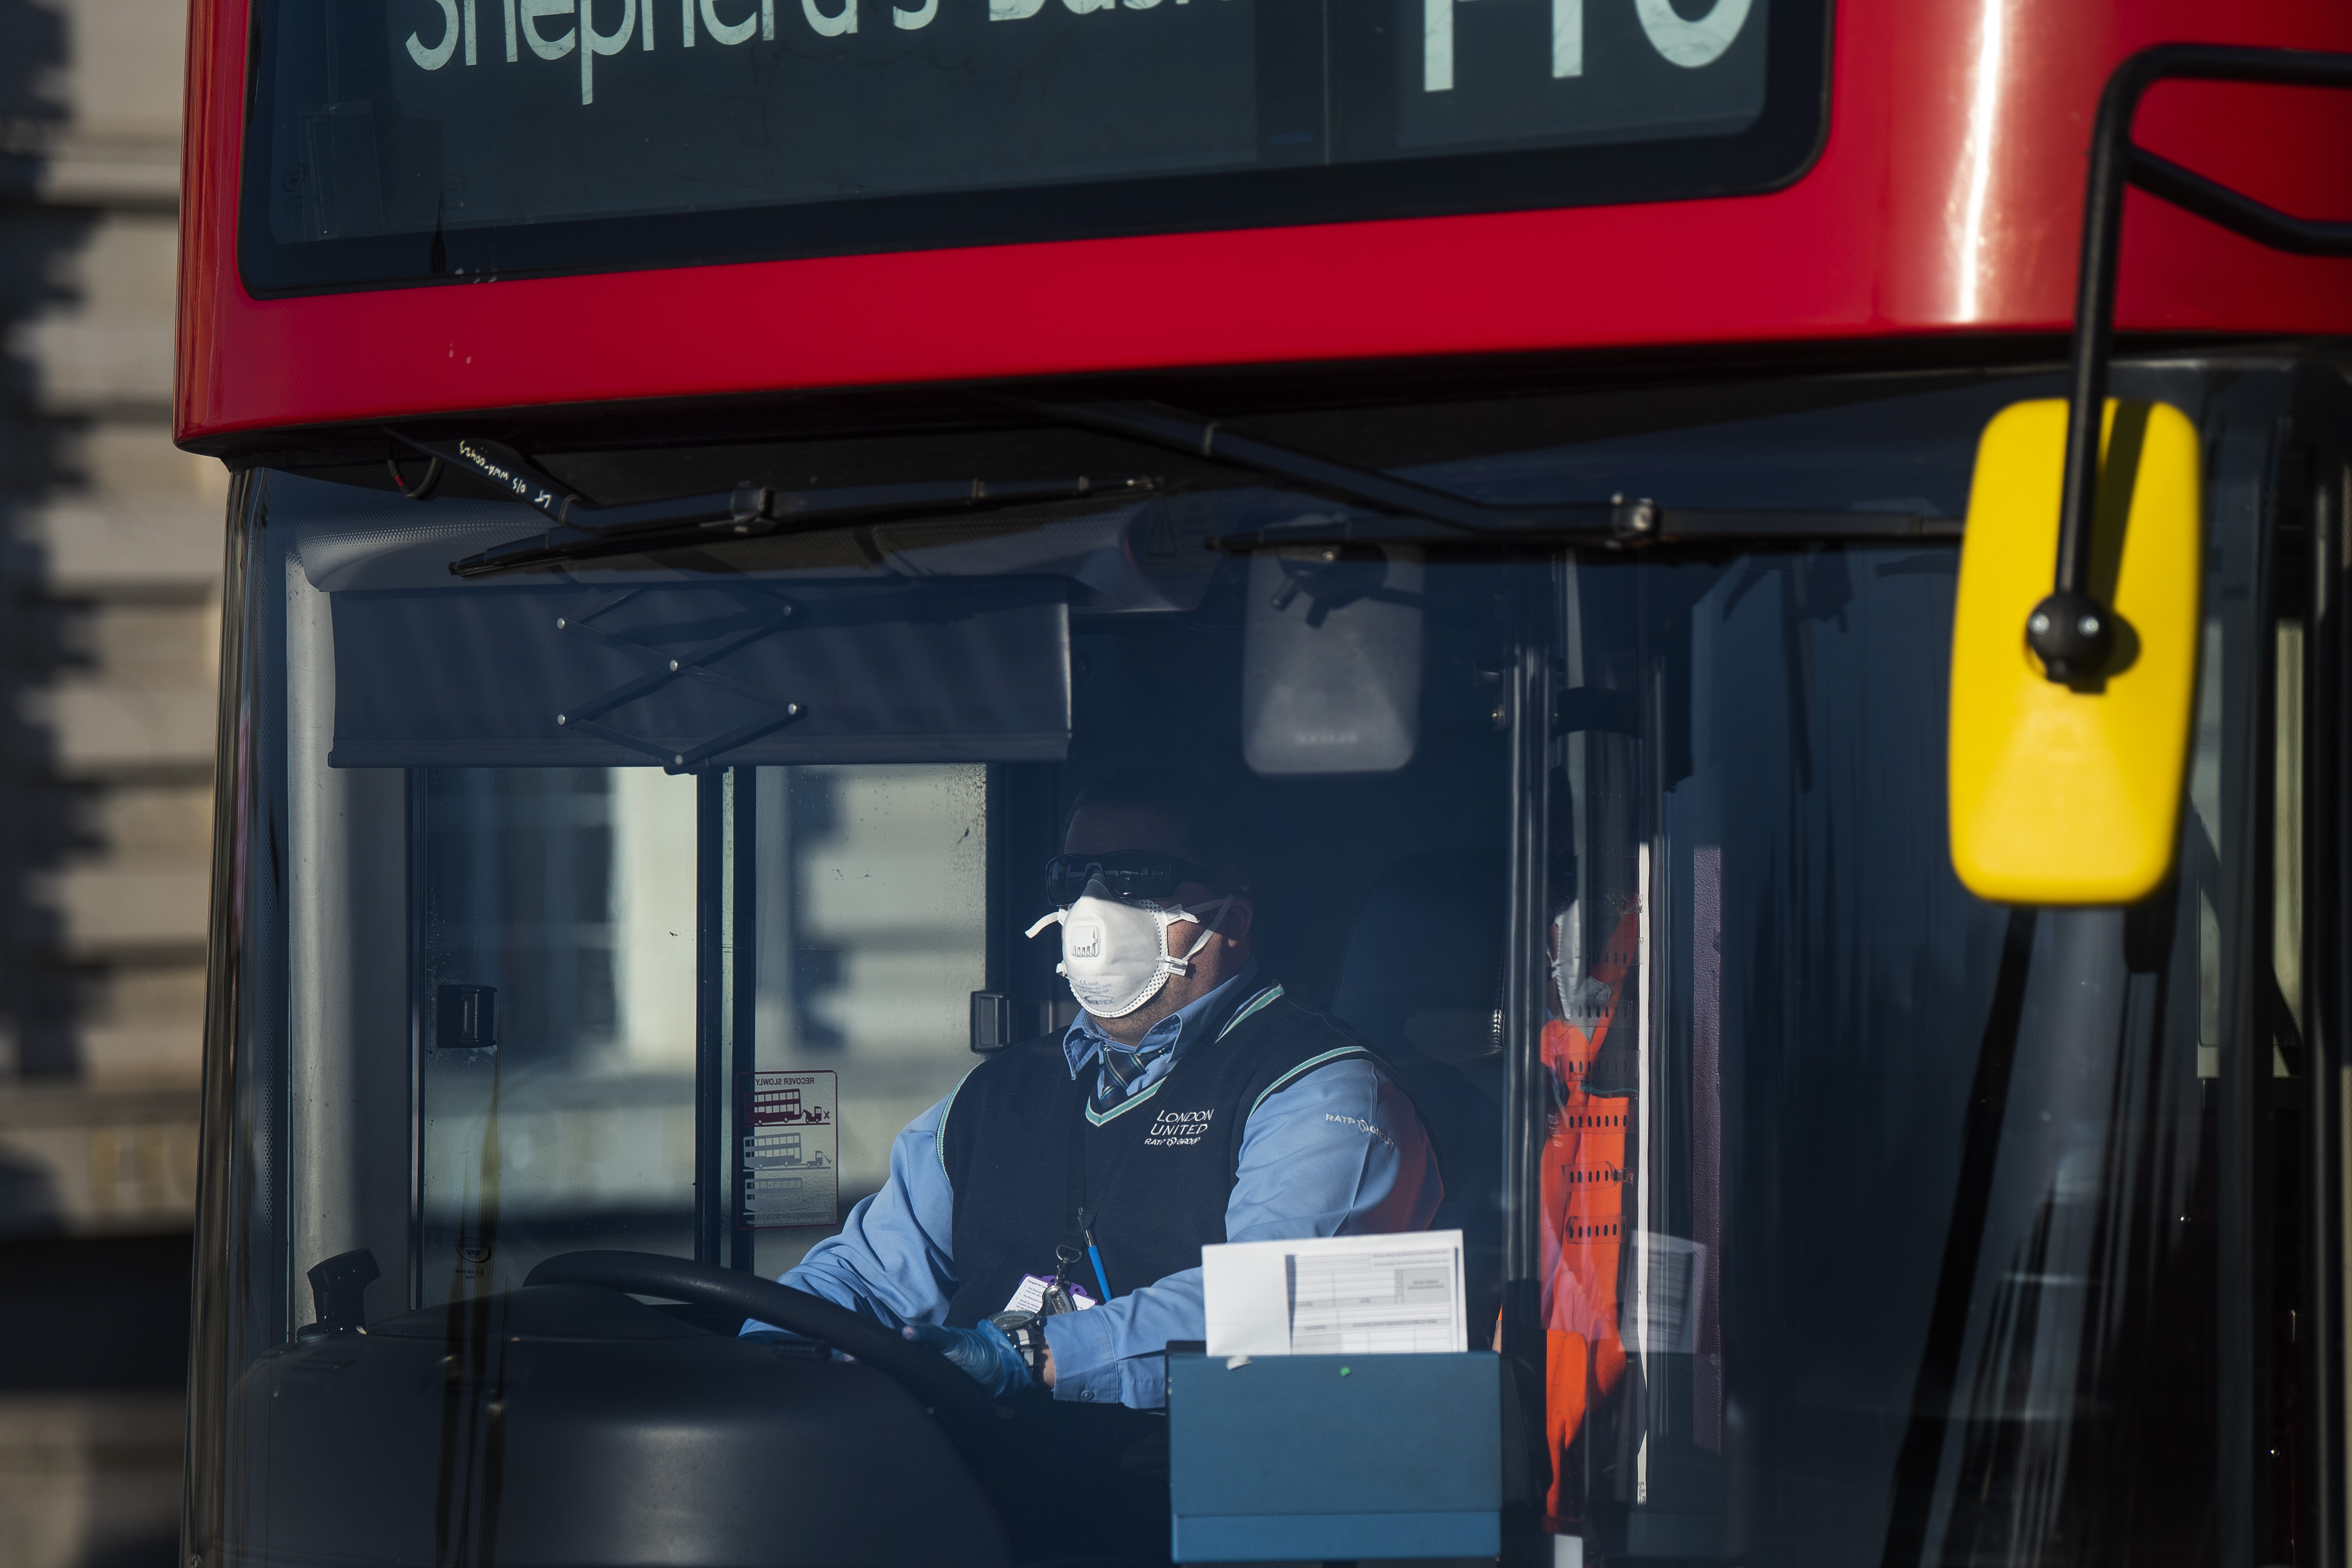 A London bus driver wearing a protective face mask on Westminster Bridge, London, after Prime Minister Boris Johnson made the decision to put the UK in lockdown to help curb the spread of the coronavirus.